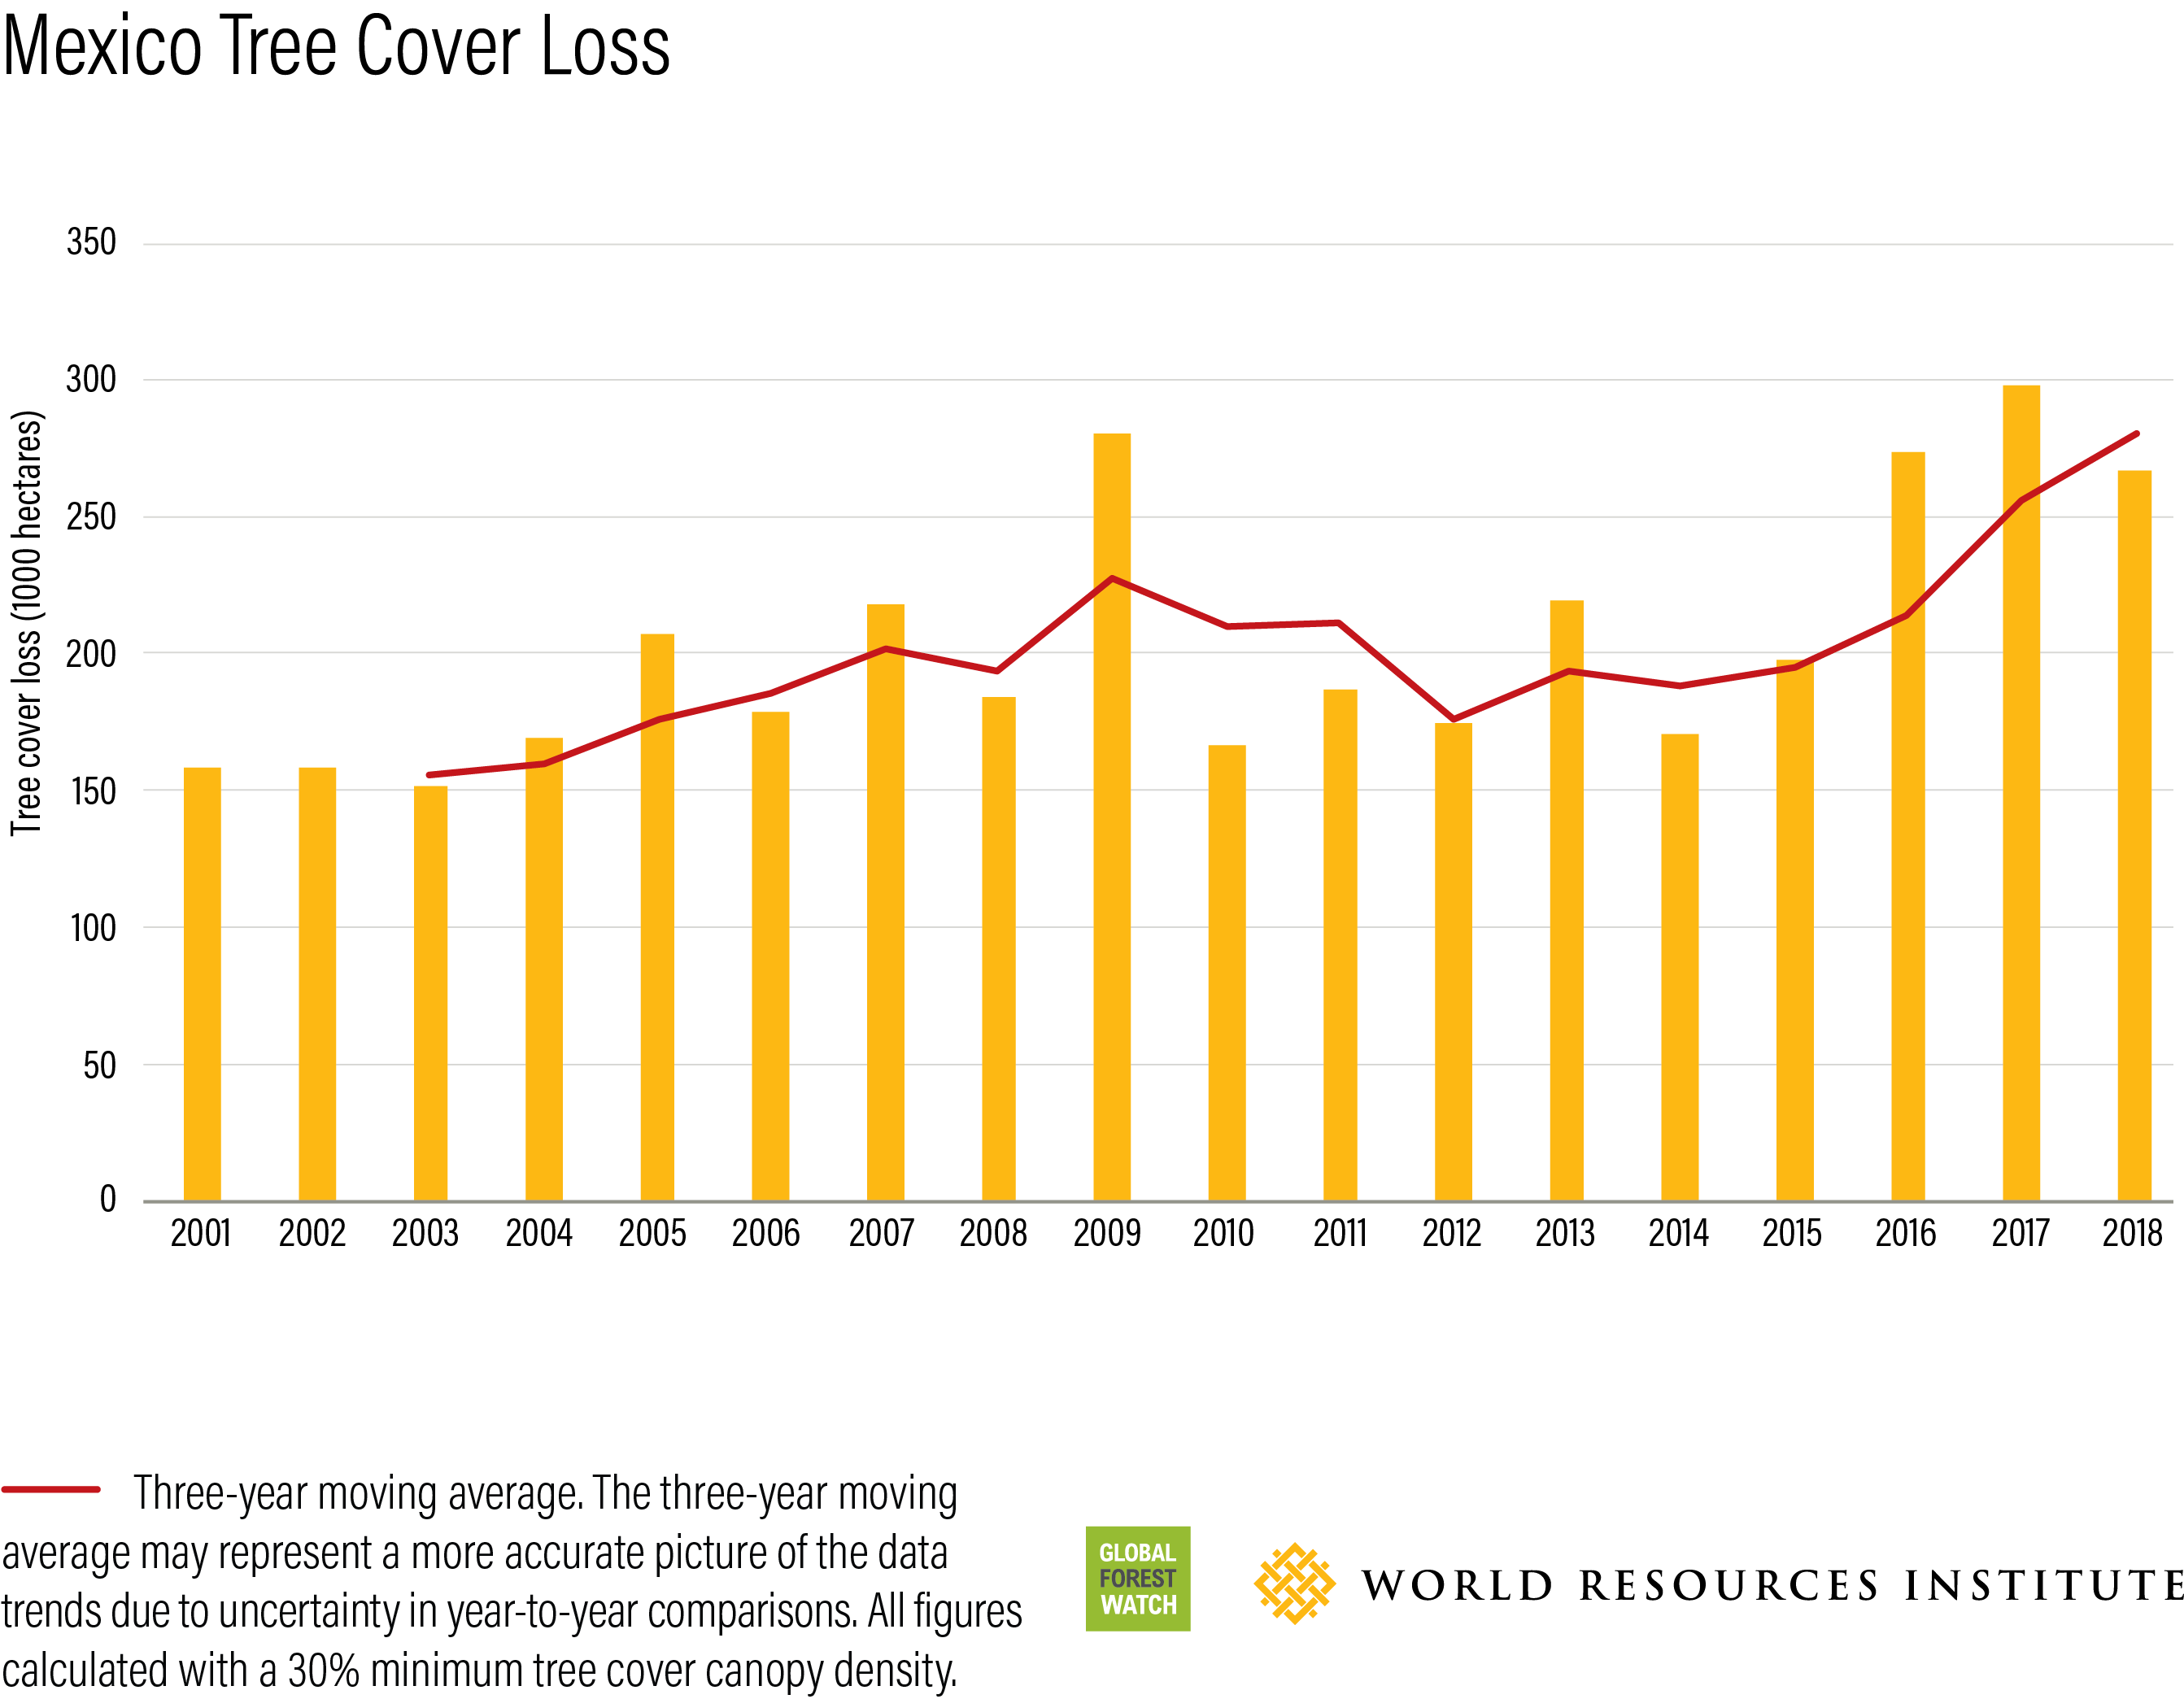 Tree cover loss in Mexico